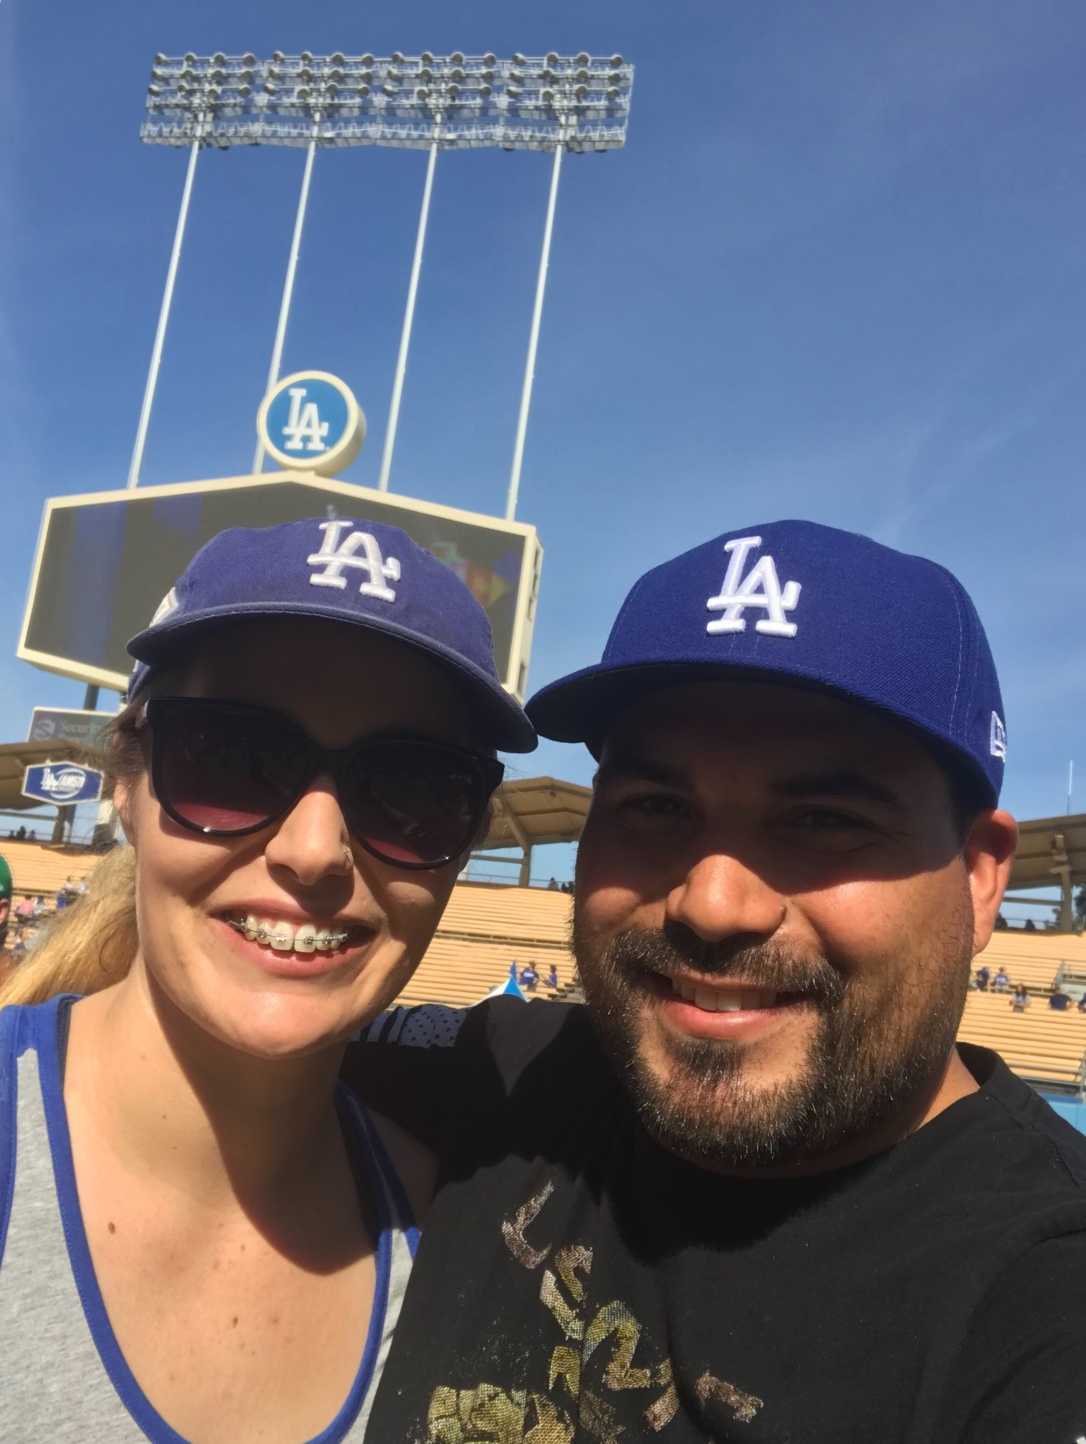 Dodger Stadium Fan Fest 2019 on the field